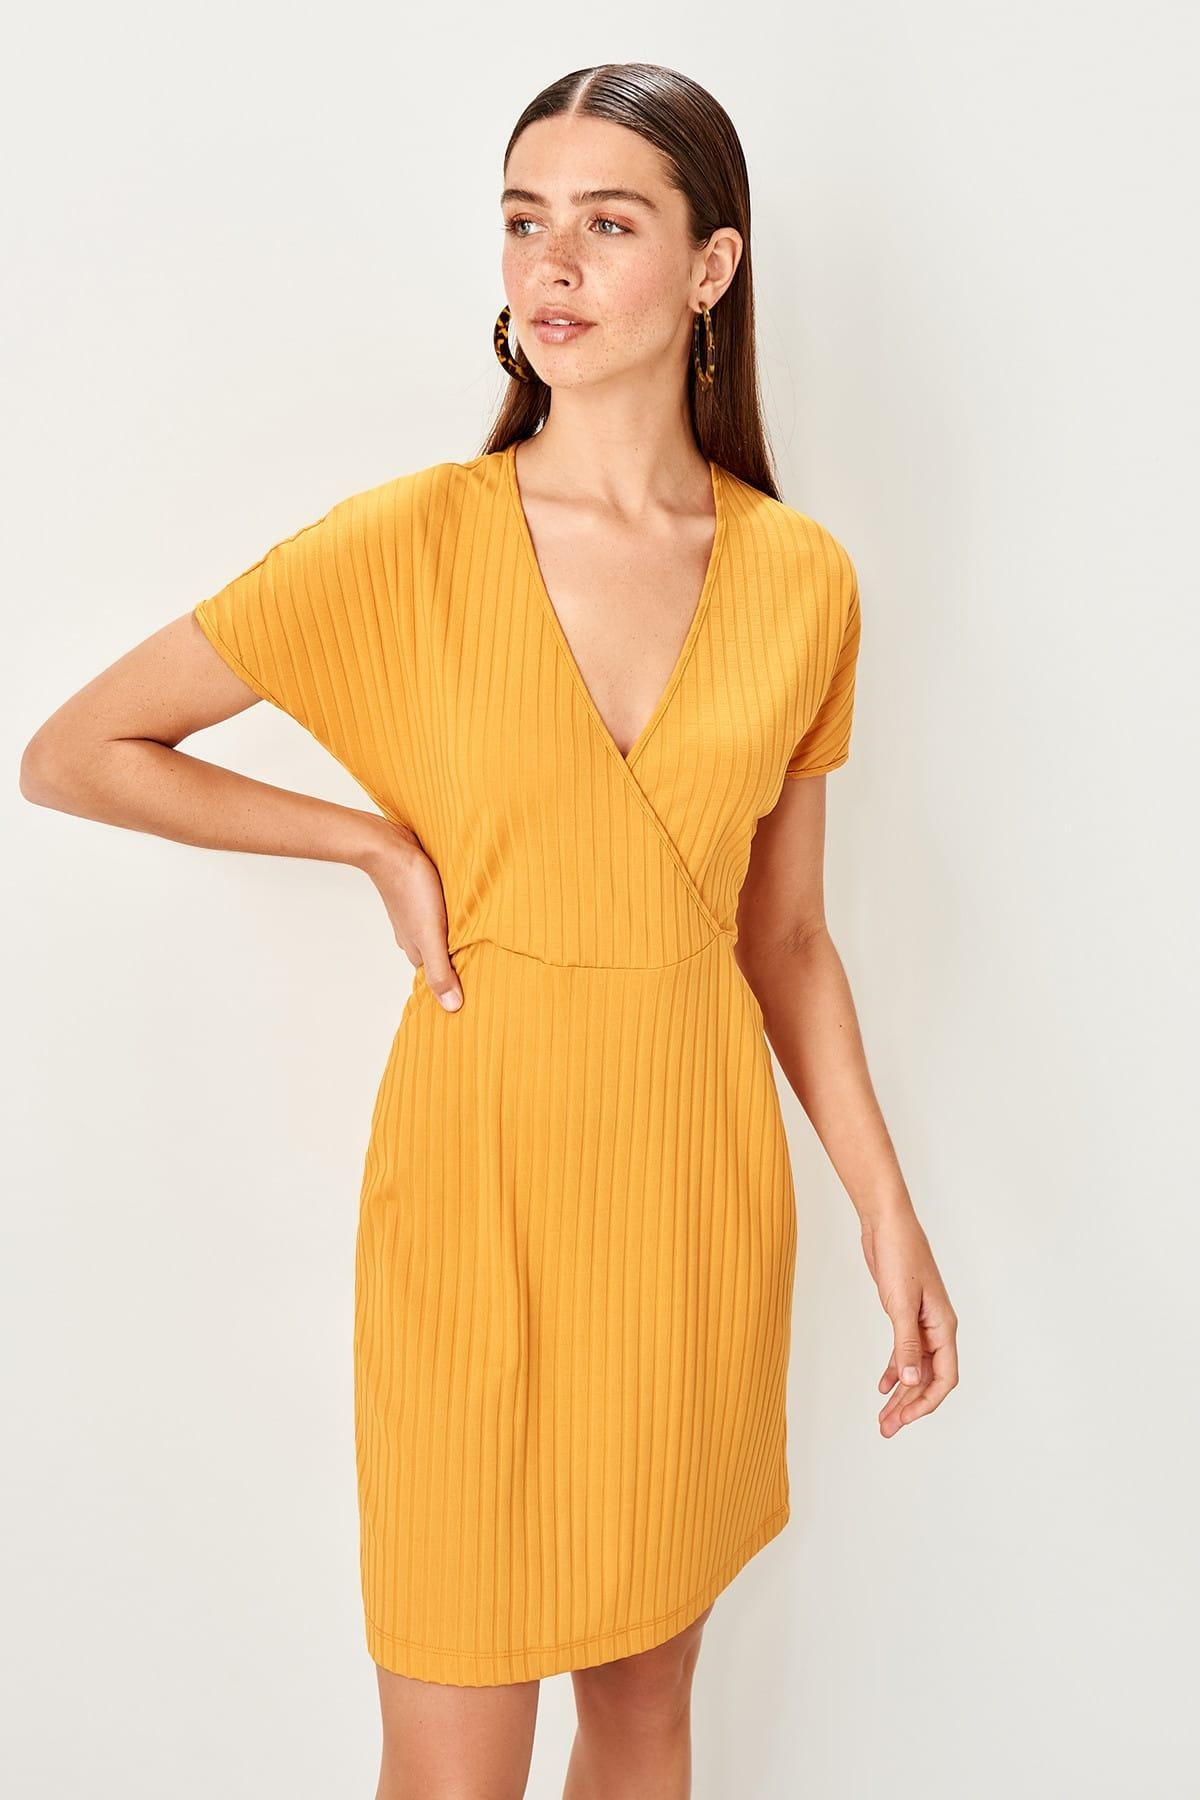 Yellow Double Breasted Knitted Dress - emuuz.com